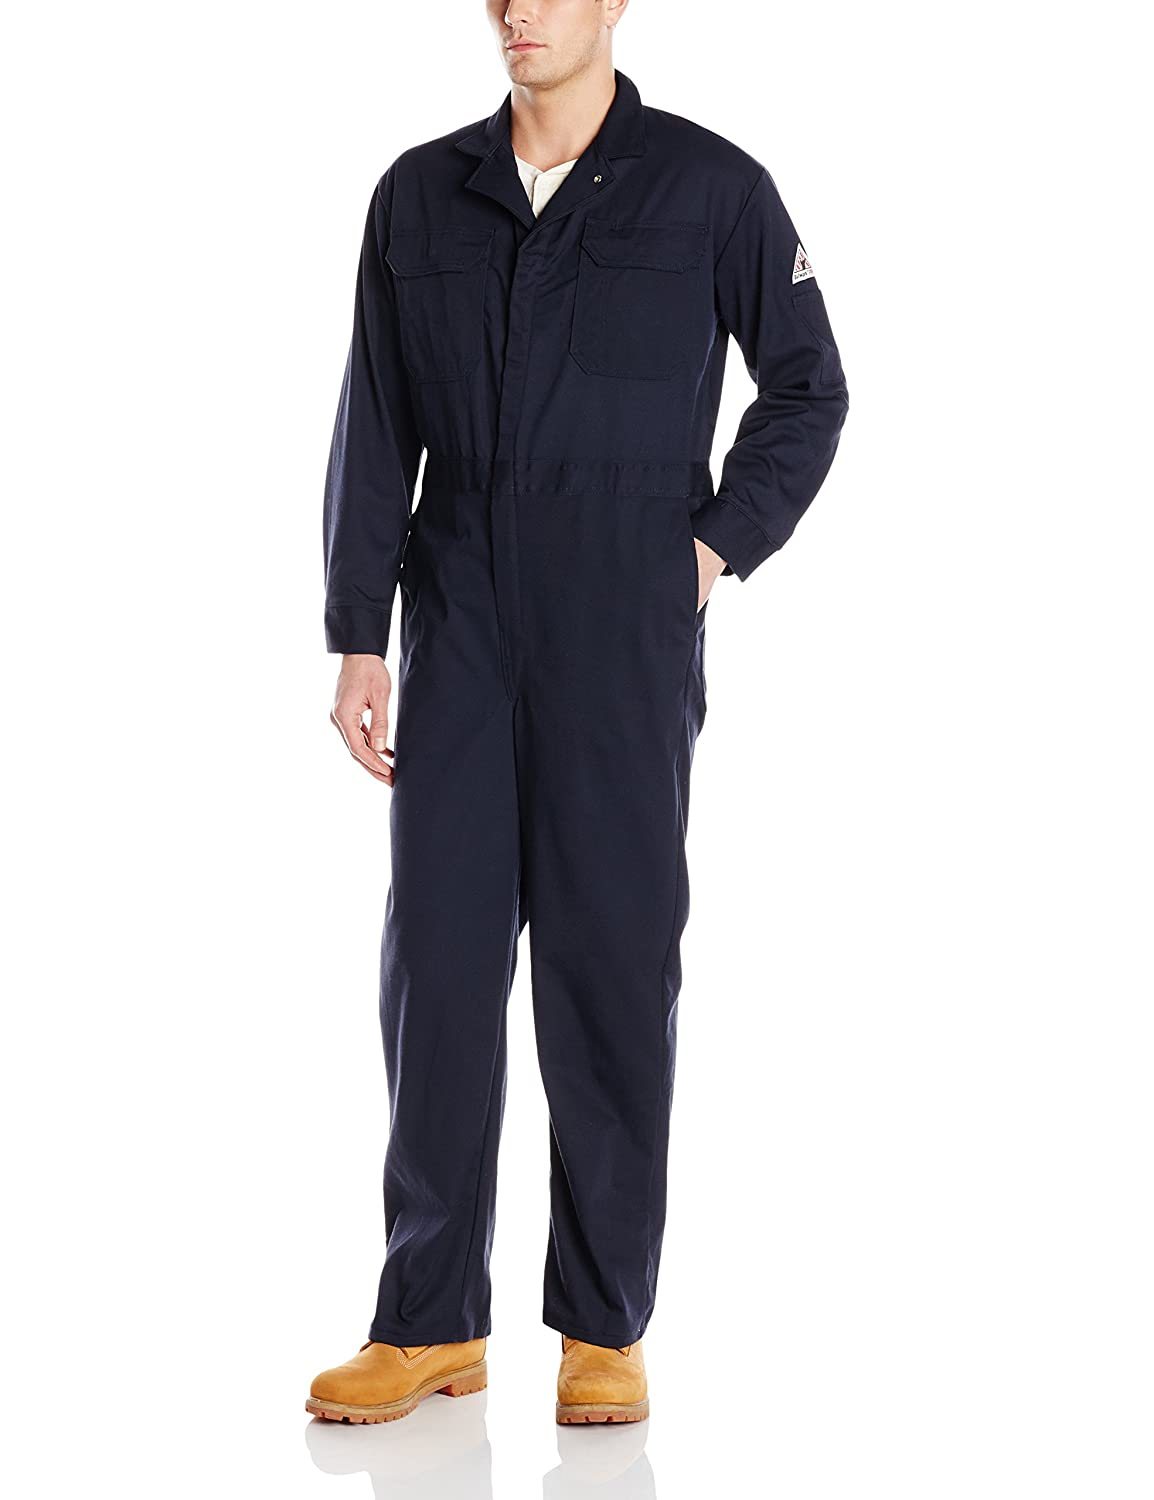 Bulwark Flame Resistant 9 oz Twill Cotton Deluxe Coverall with Concealed Snap Cuff, Navy, 54 CED2NV RG 54